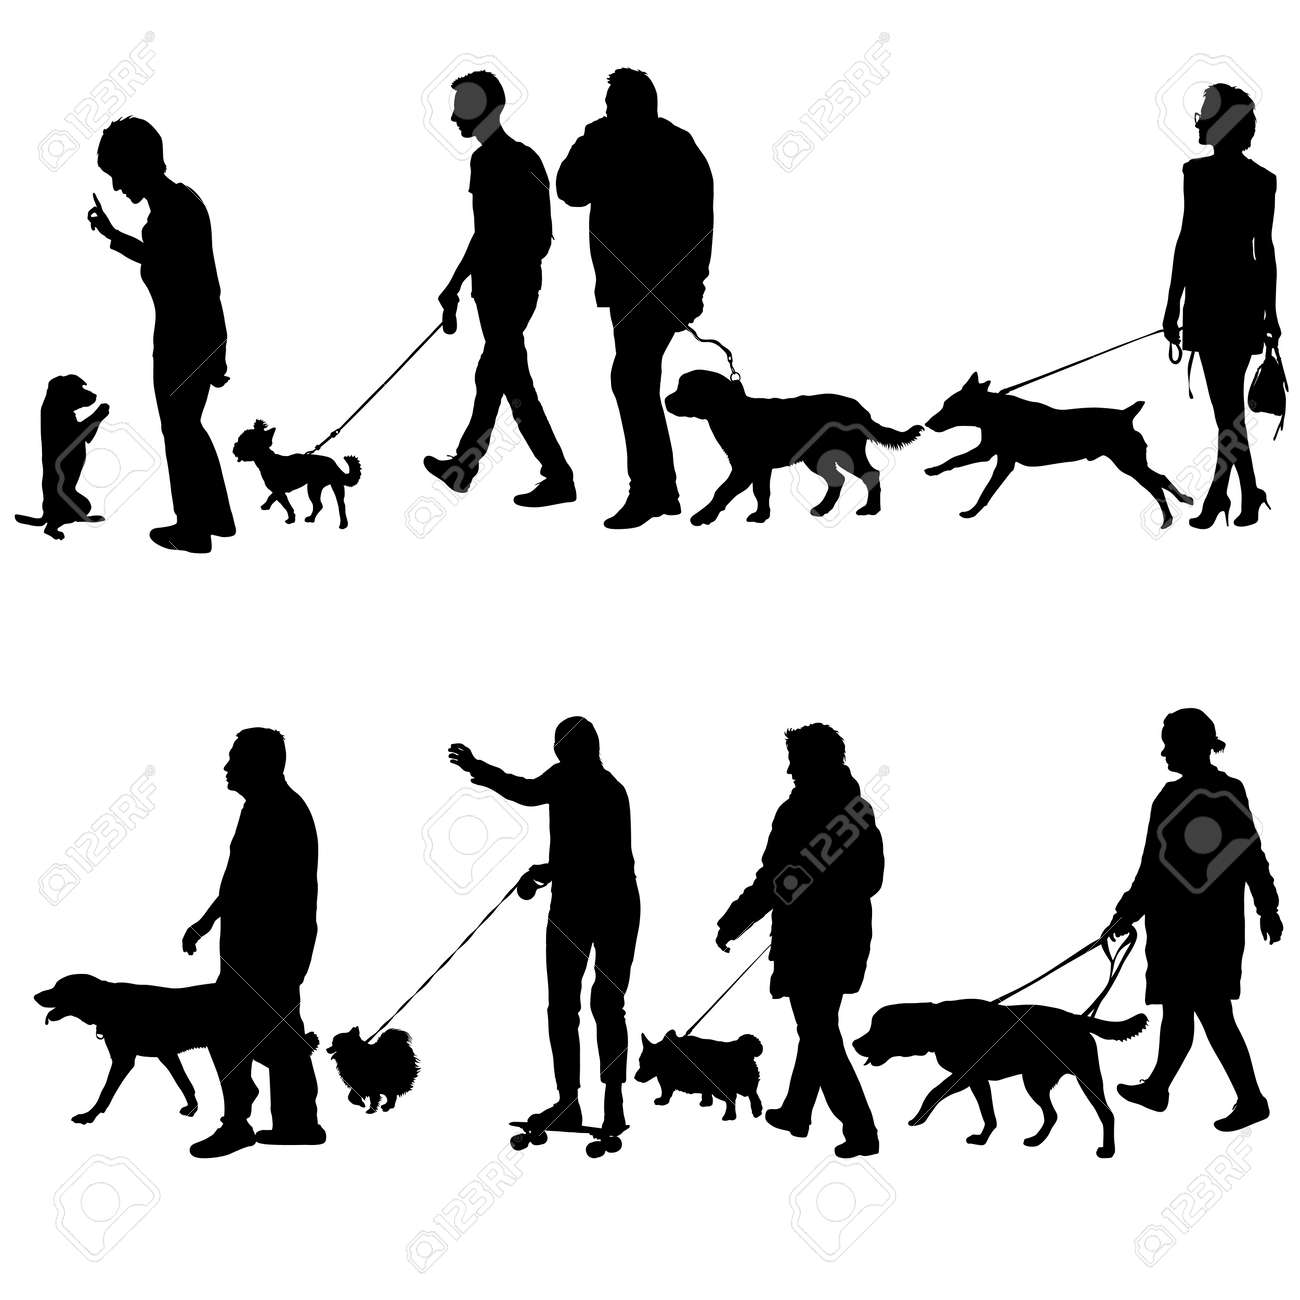 Set silhouette of people and dog on a white background. - 125806882